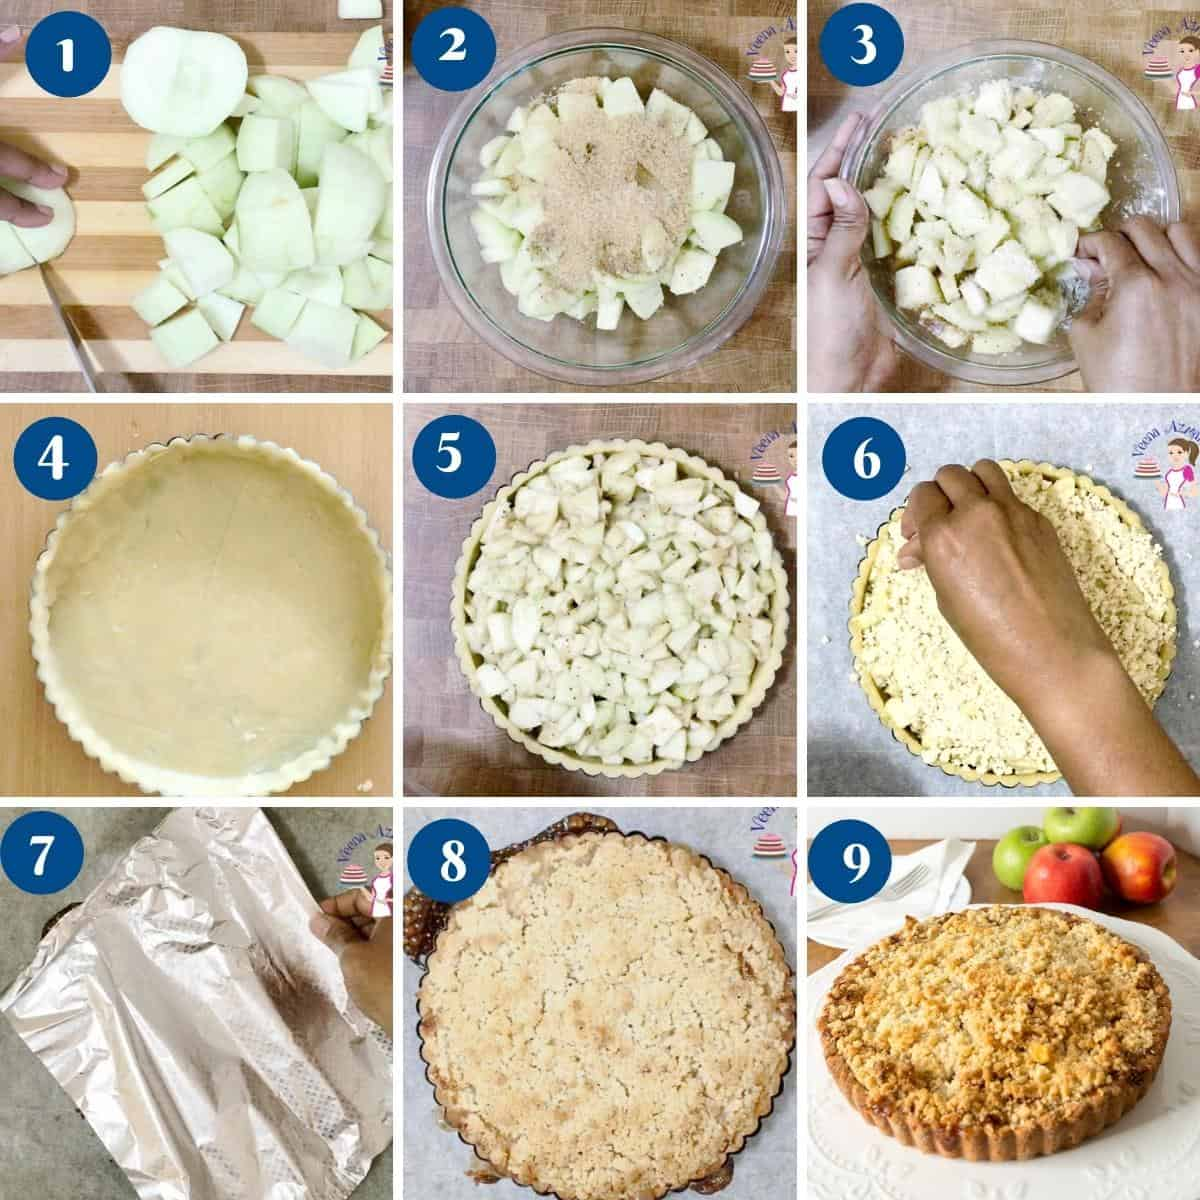 Step by step pictures how to make apple crumble tart pie.